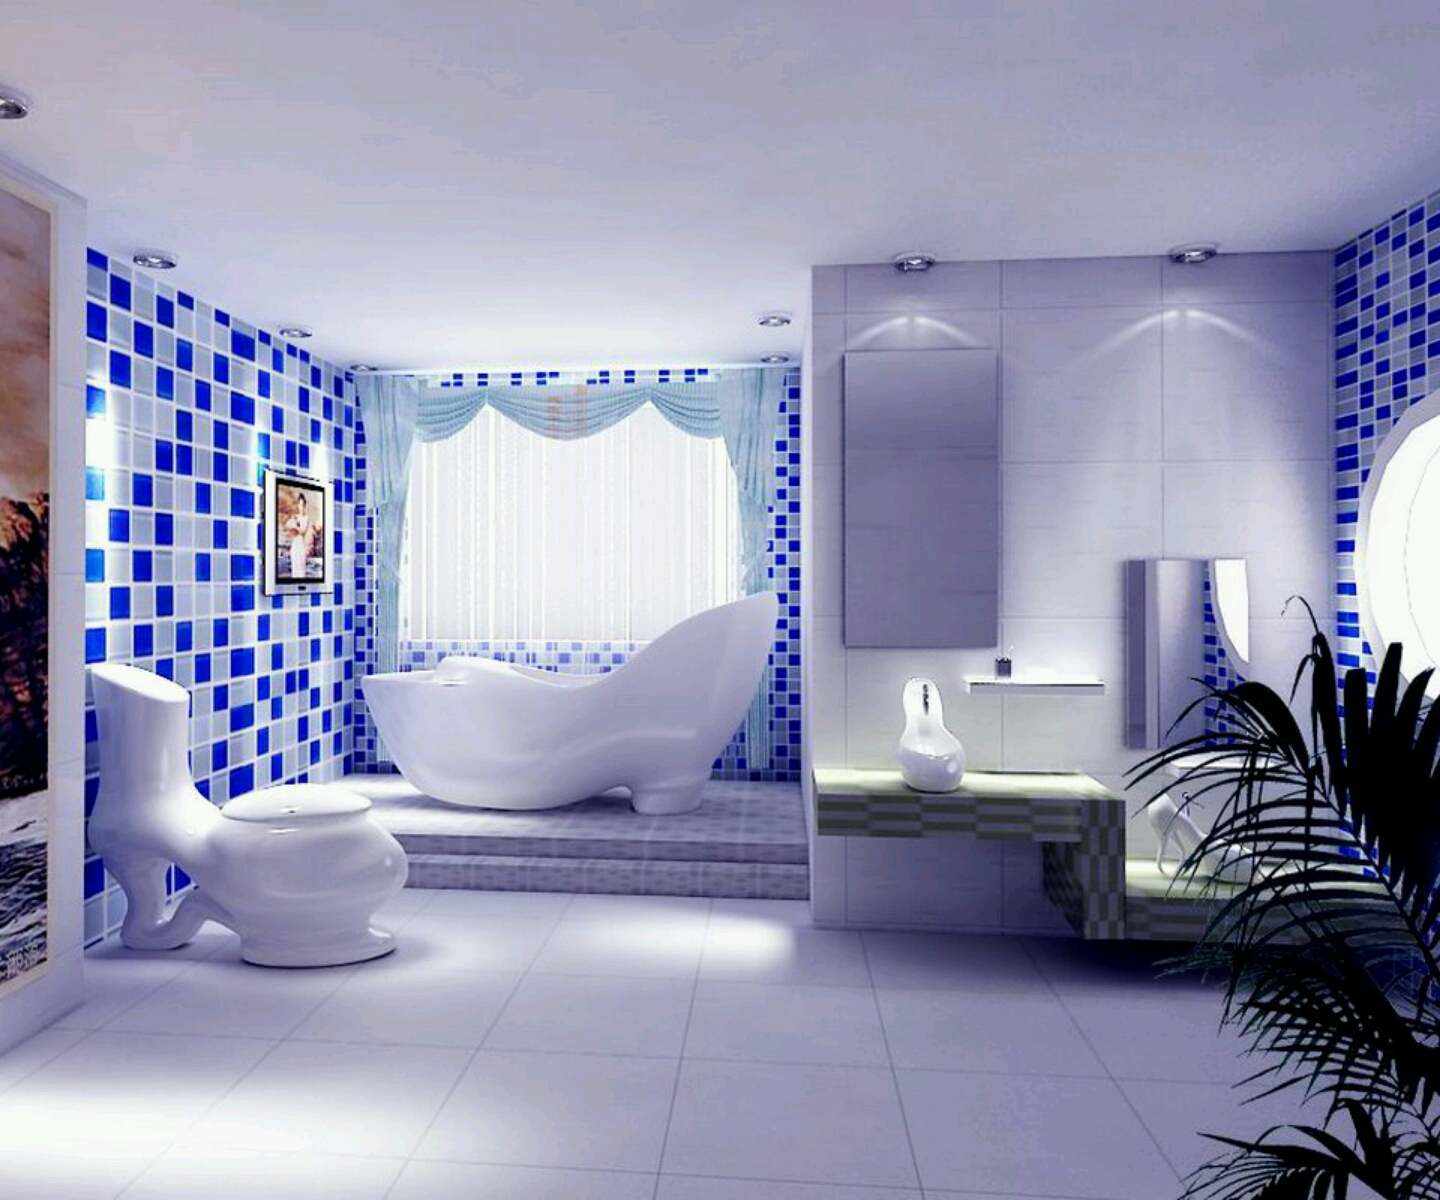 New home designs latest ultra modern washroom designs ideas for Modern home decor photo gallery